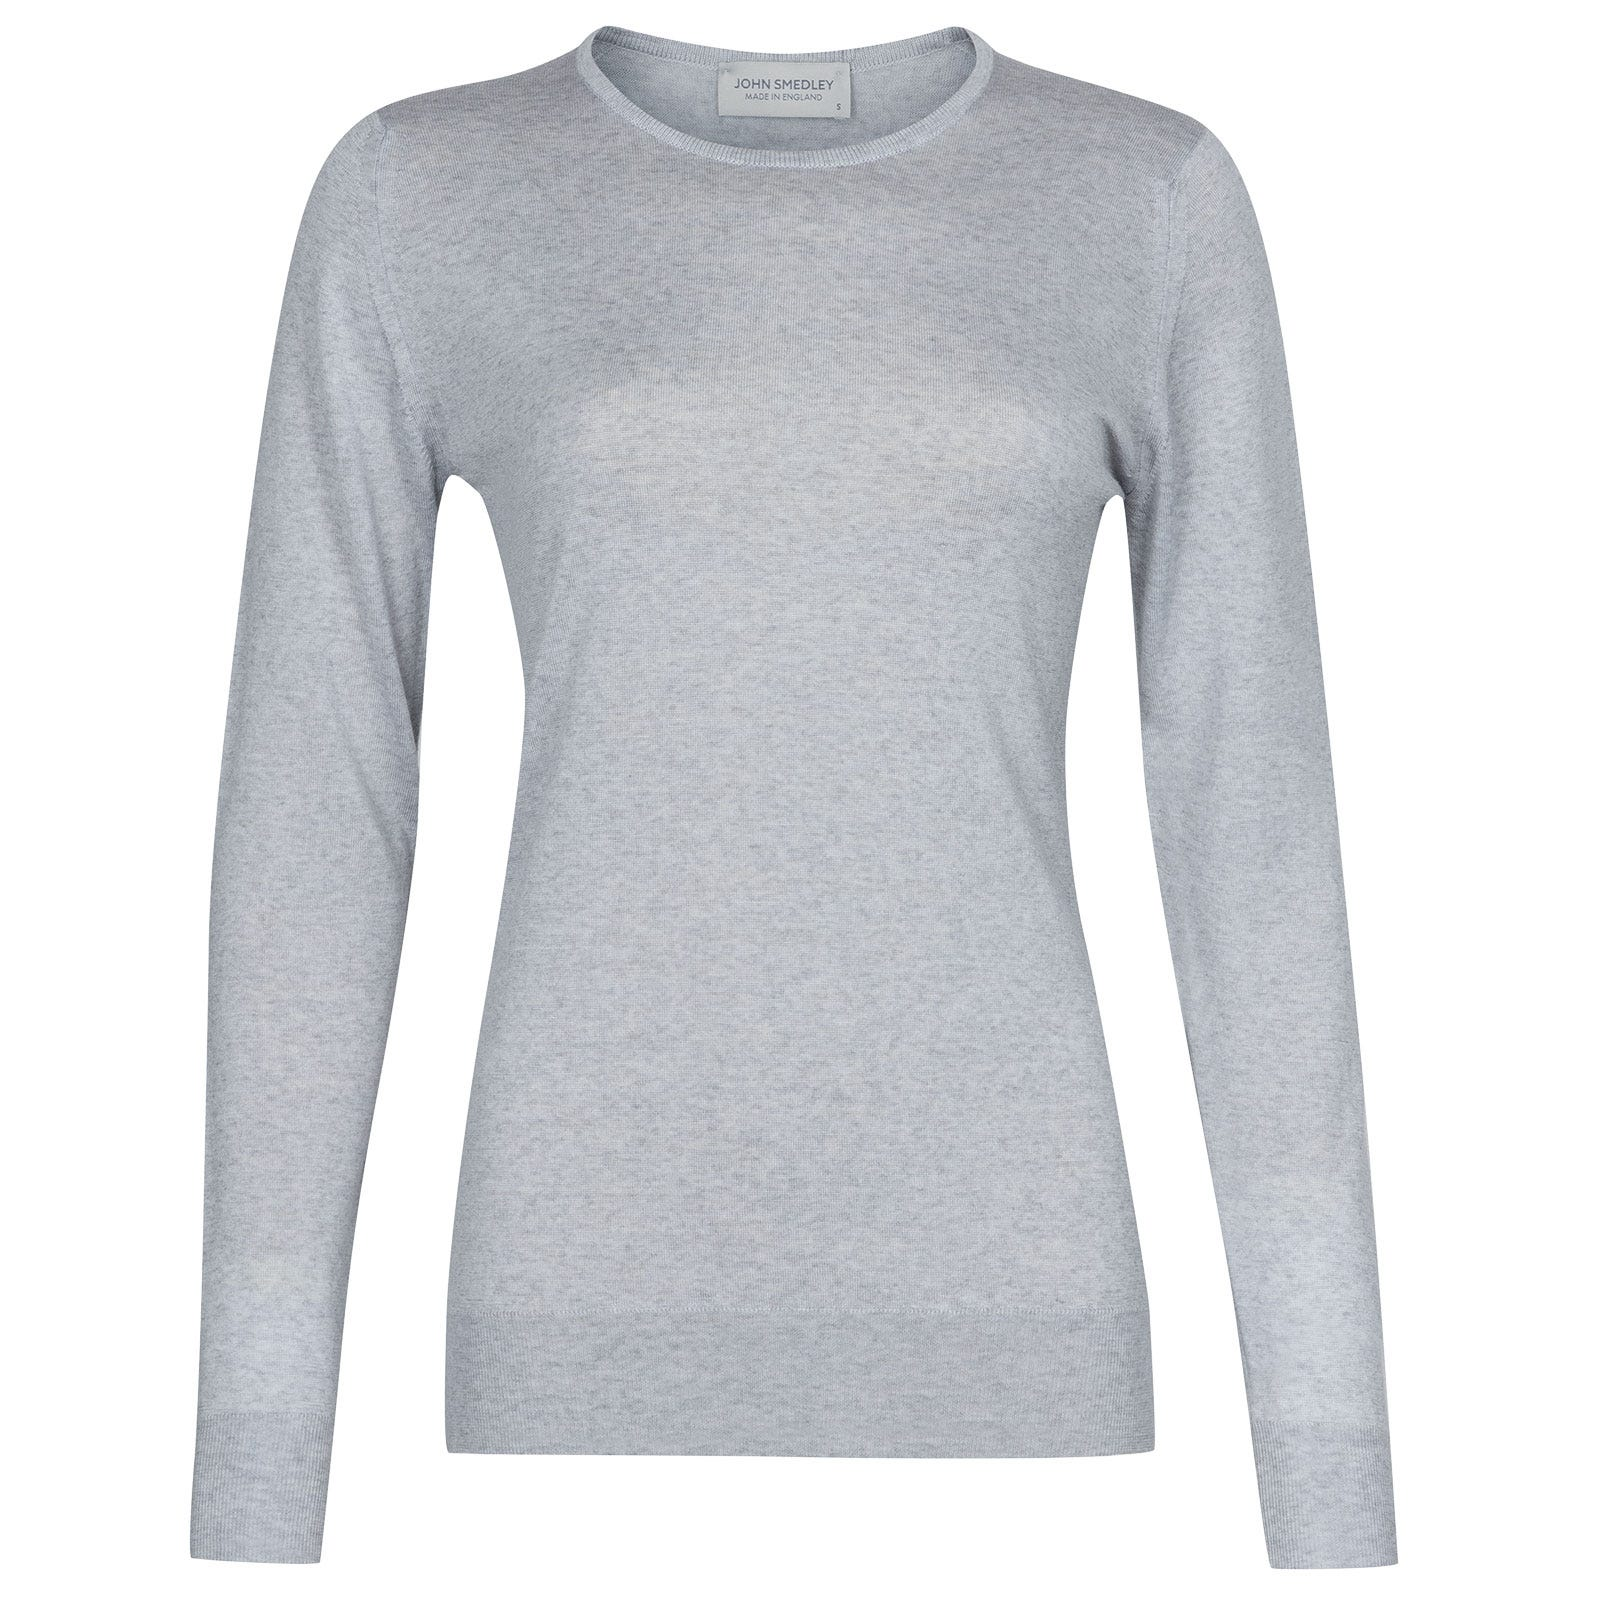 John Smedley Geranium in Bardot Grey Merino Wool Sweater-LGE